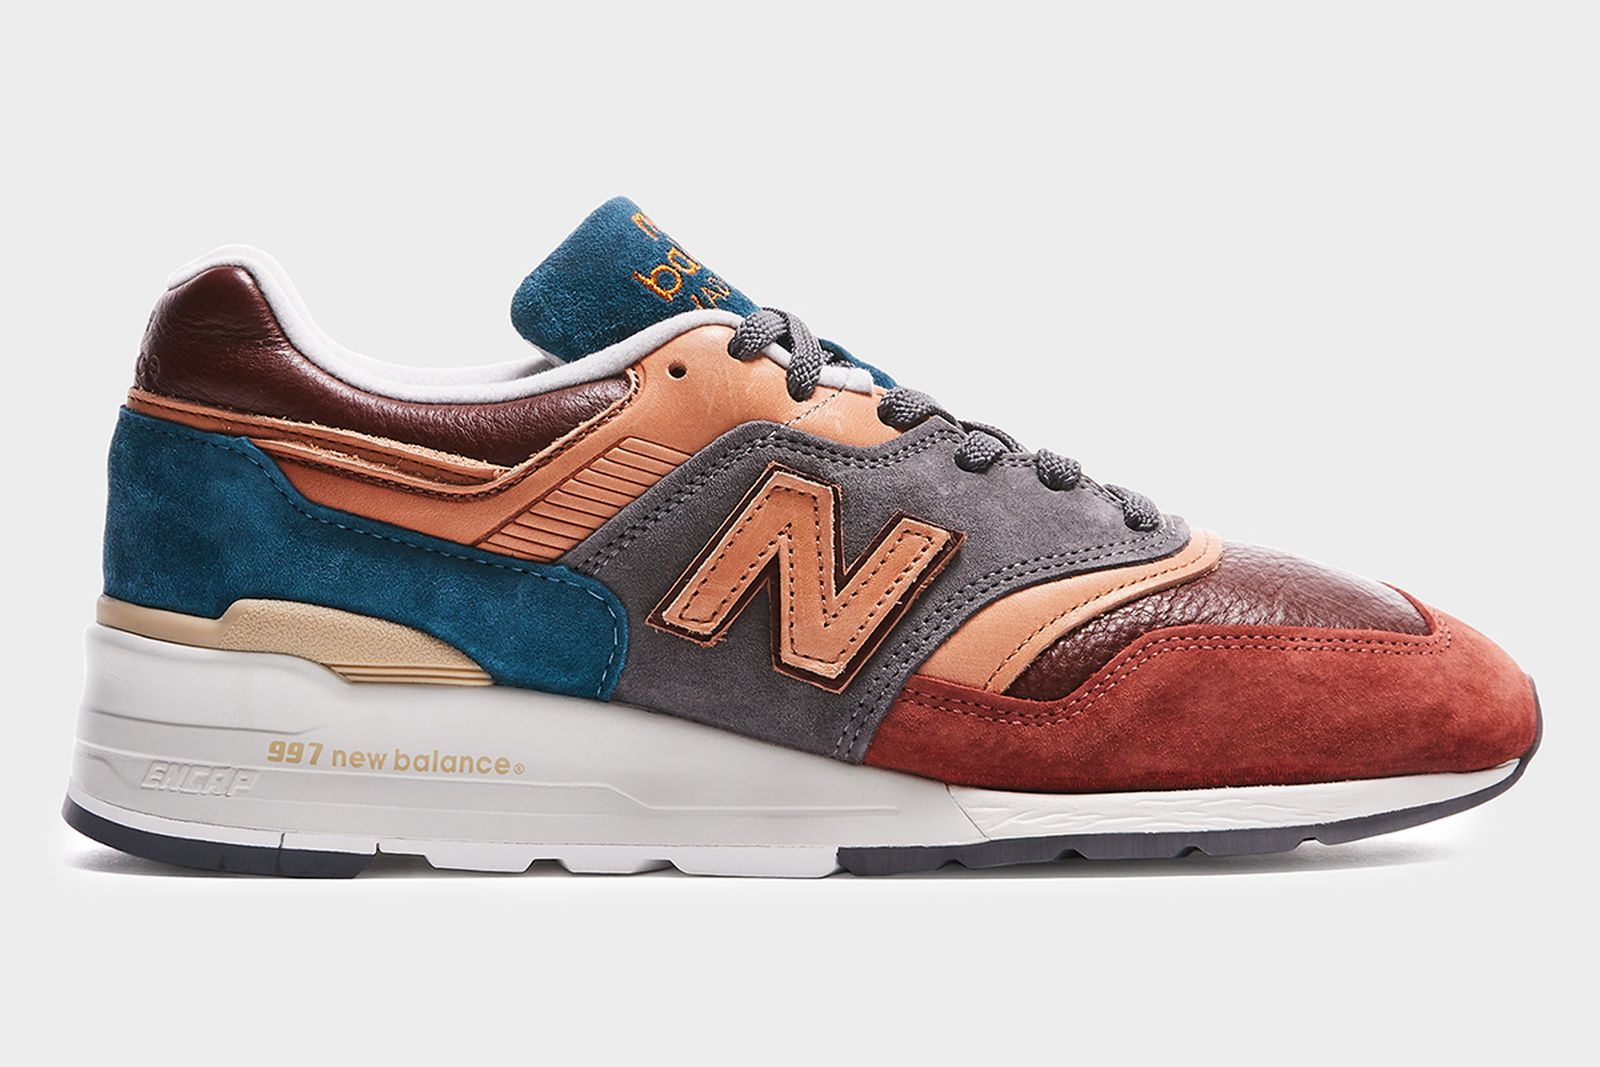 todd-snyder-new-balance-997-hudson-ny-release-date-price-06